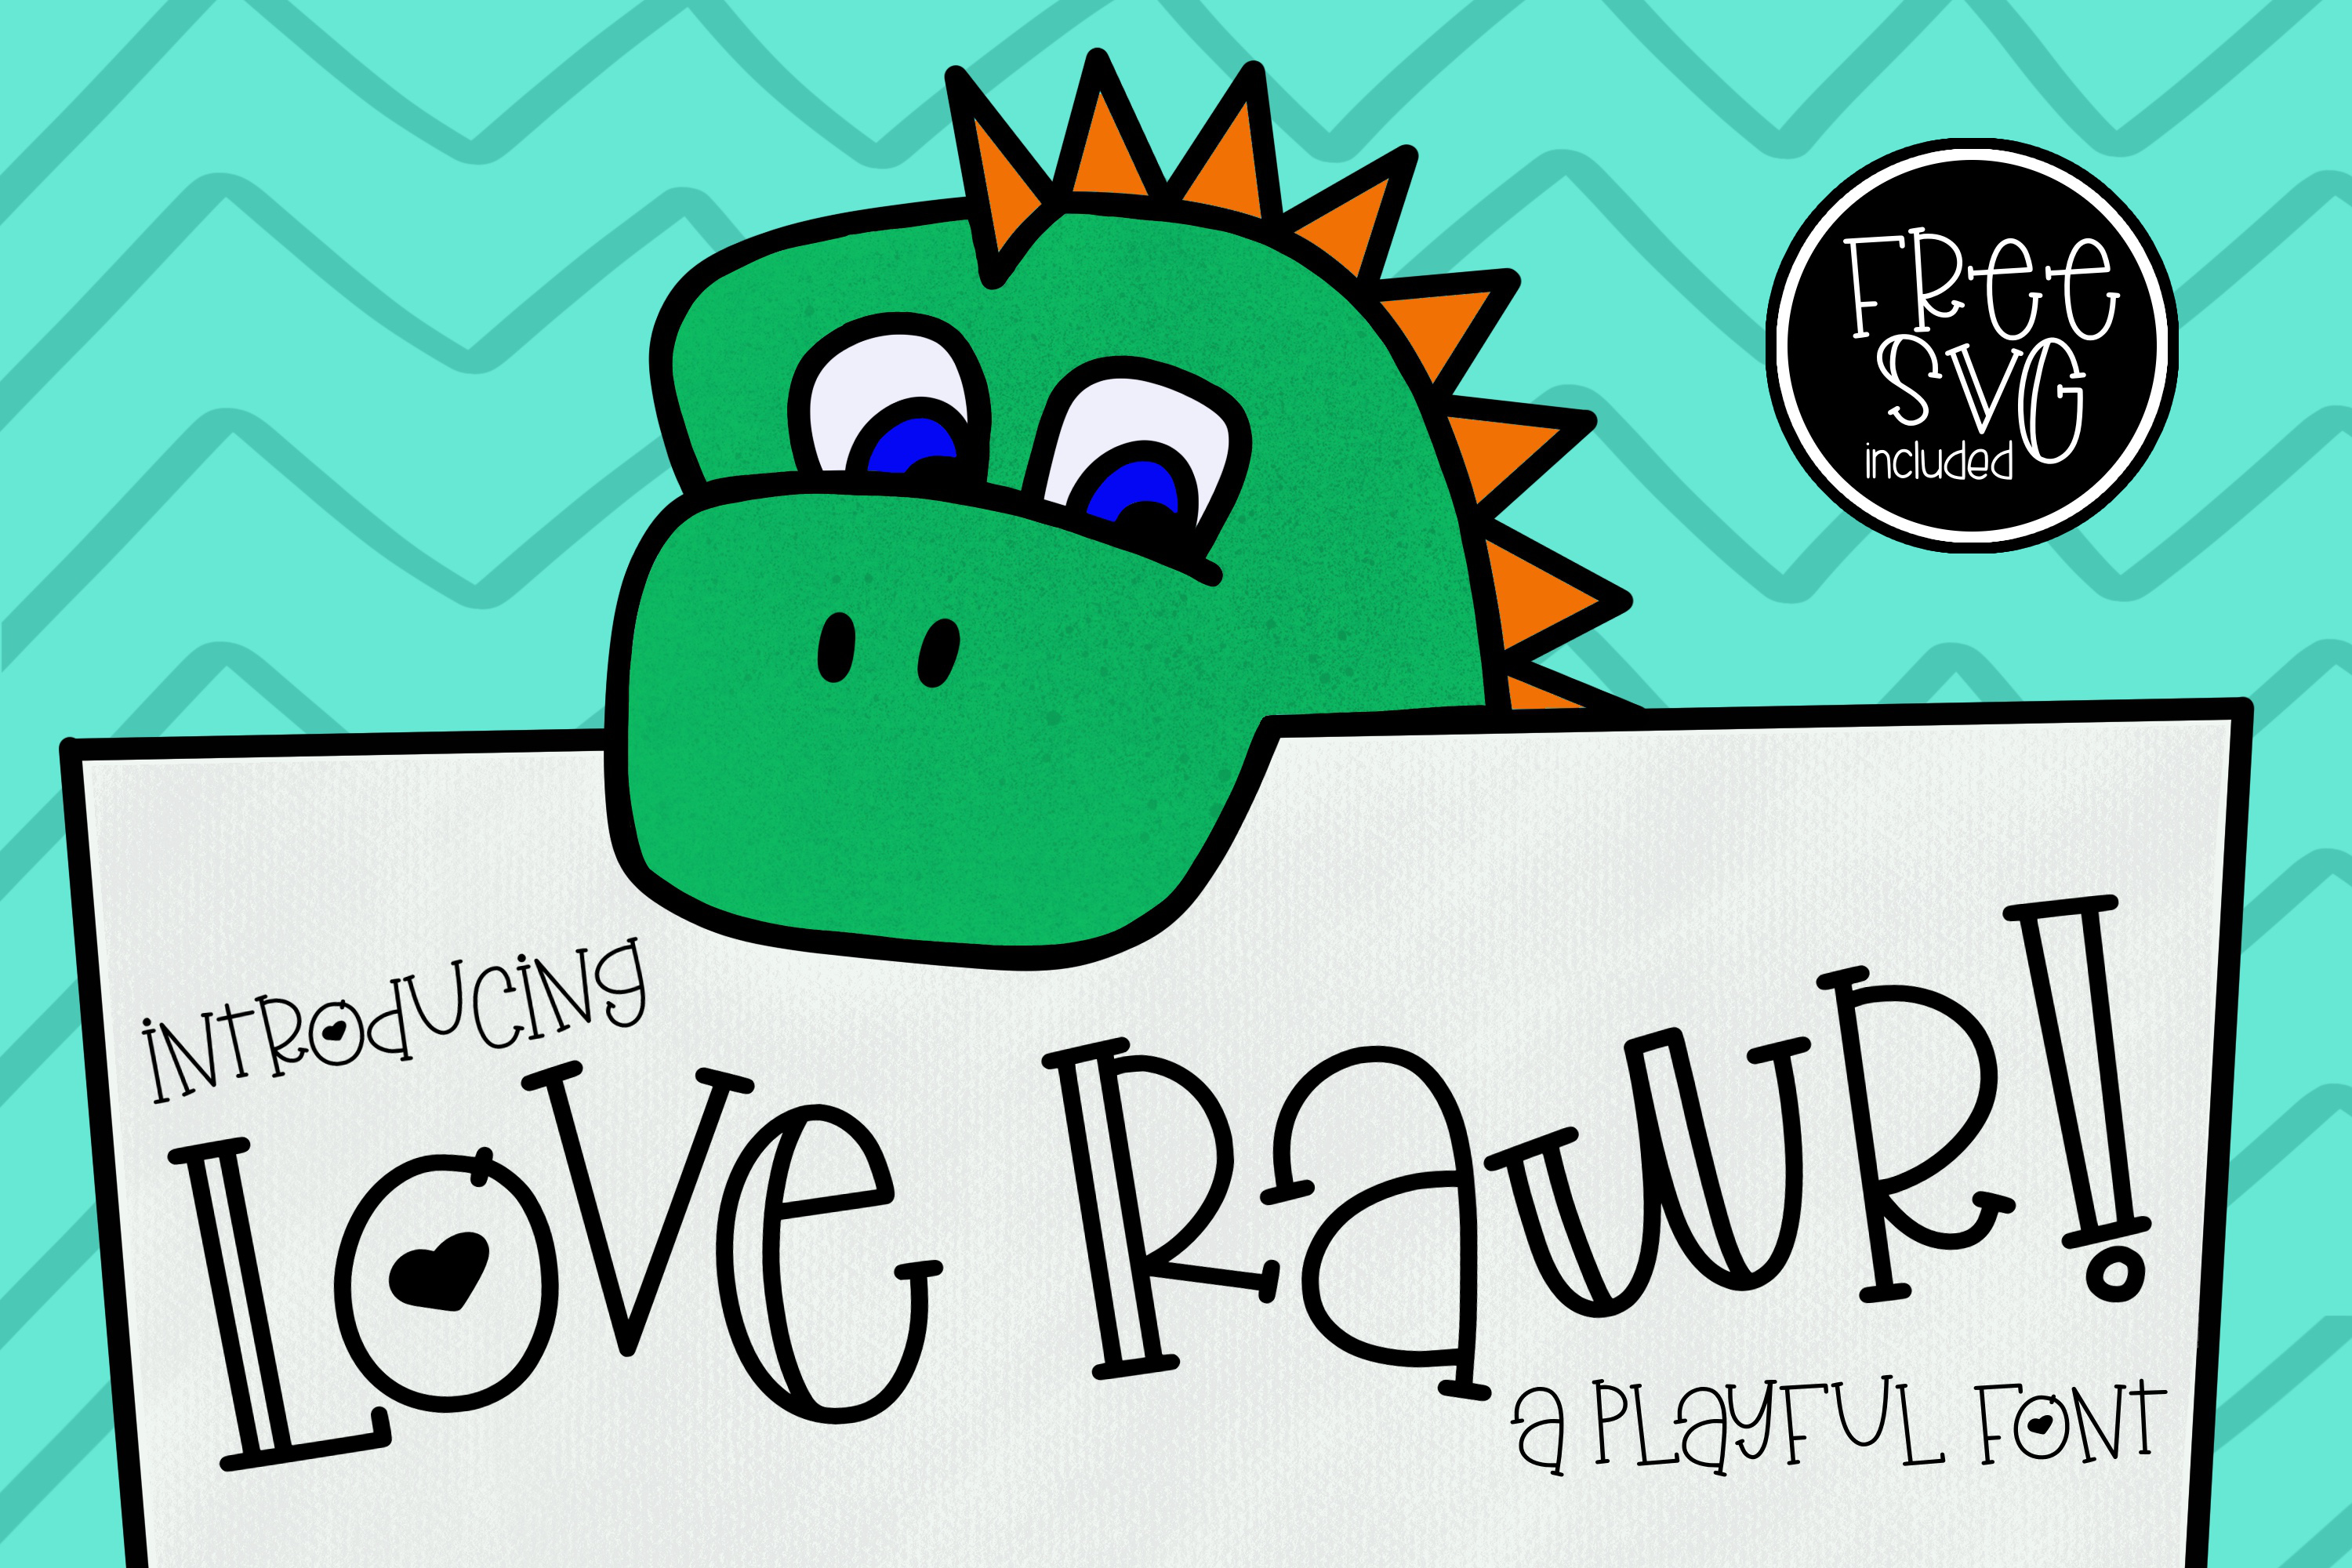 Love Rawr a playful font example image 1